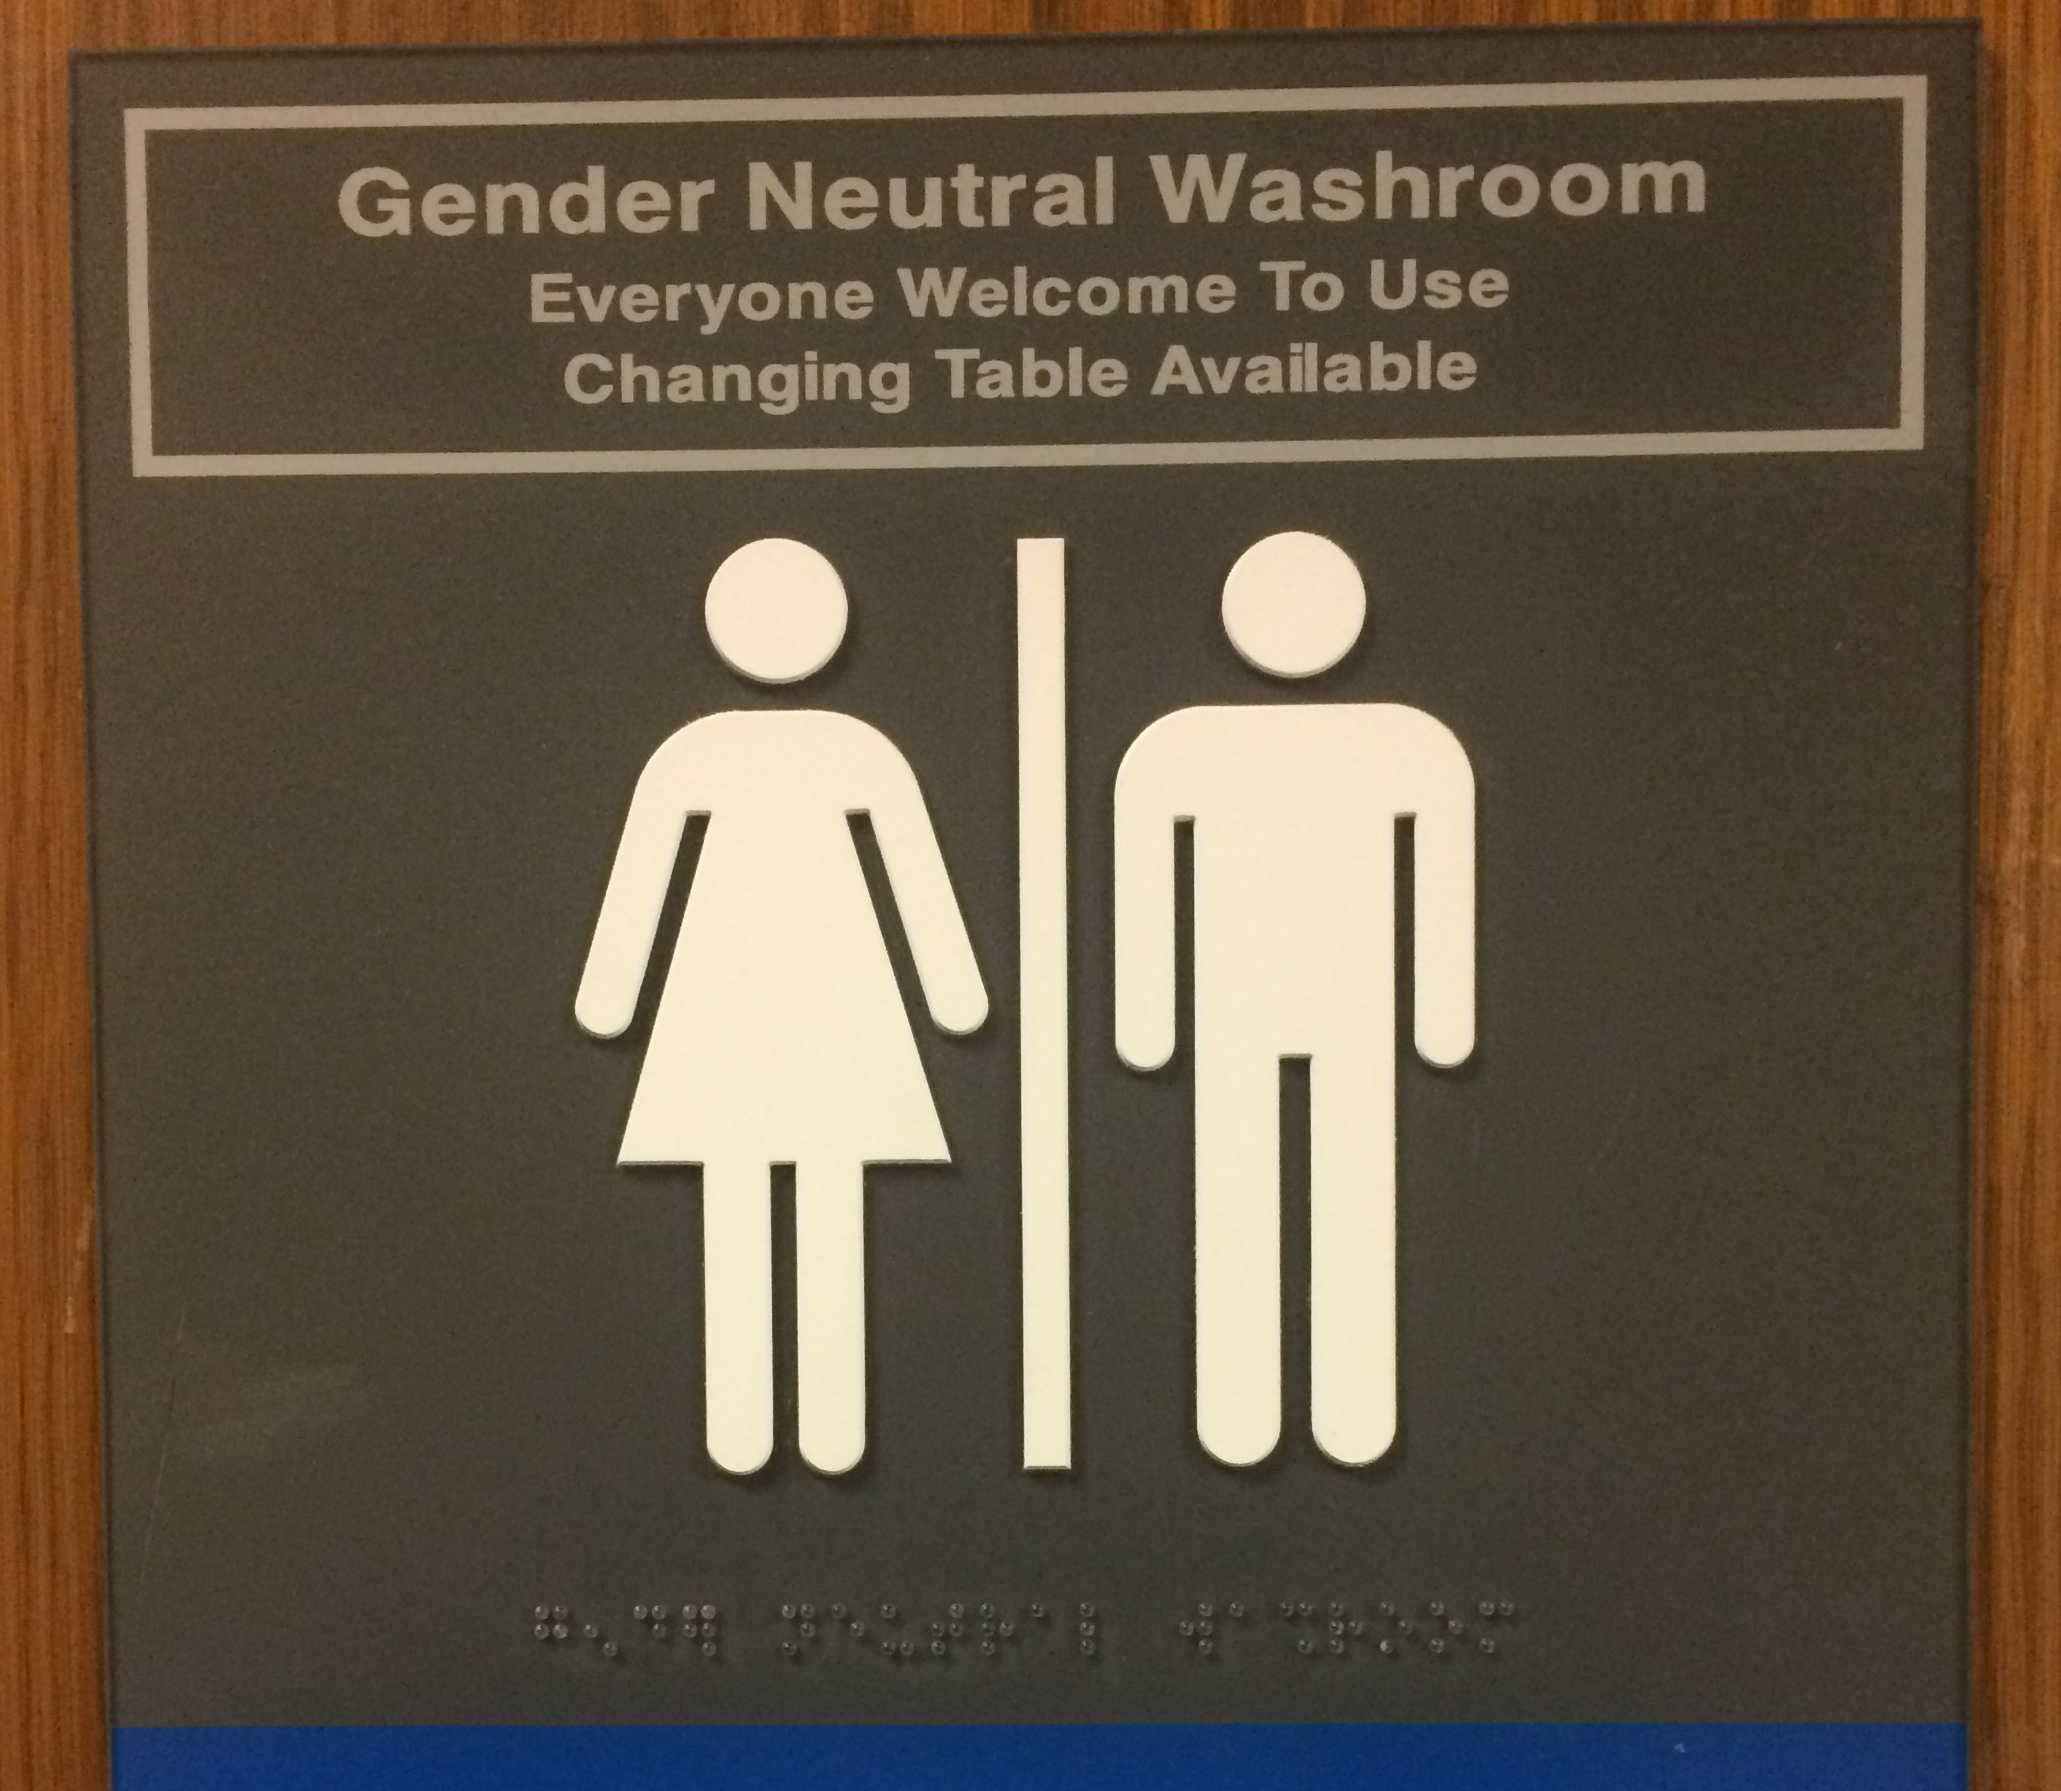 EdCC's only gender neutral bathroom is located in an alcove attached to the northwest corner of Brier Hall. College administration plans to add more all-gender bathrooms in the near future.